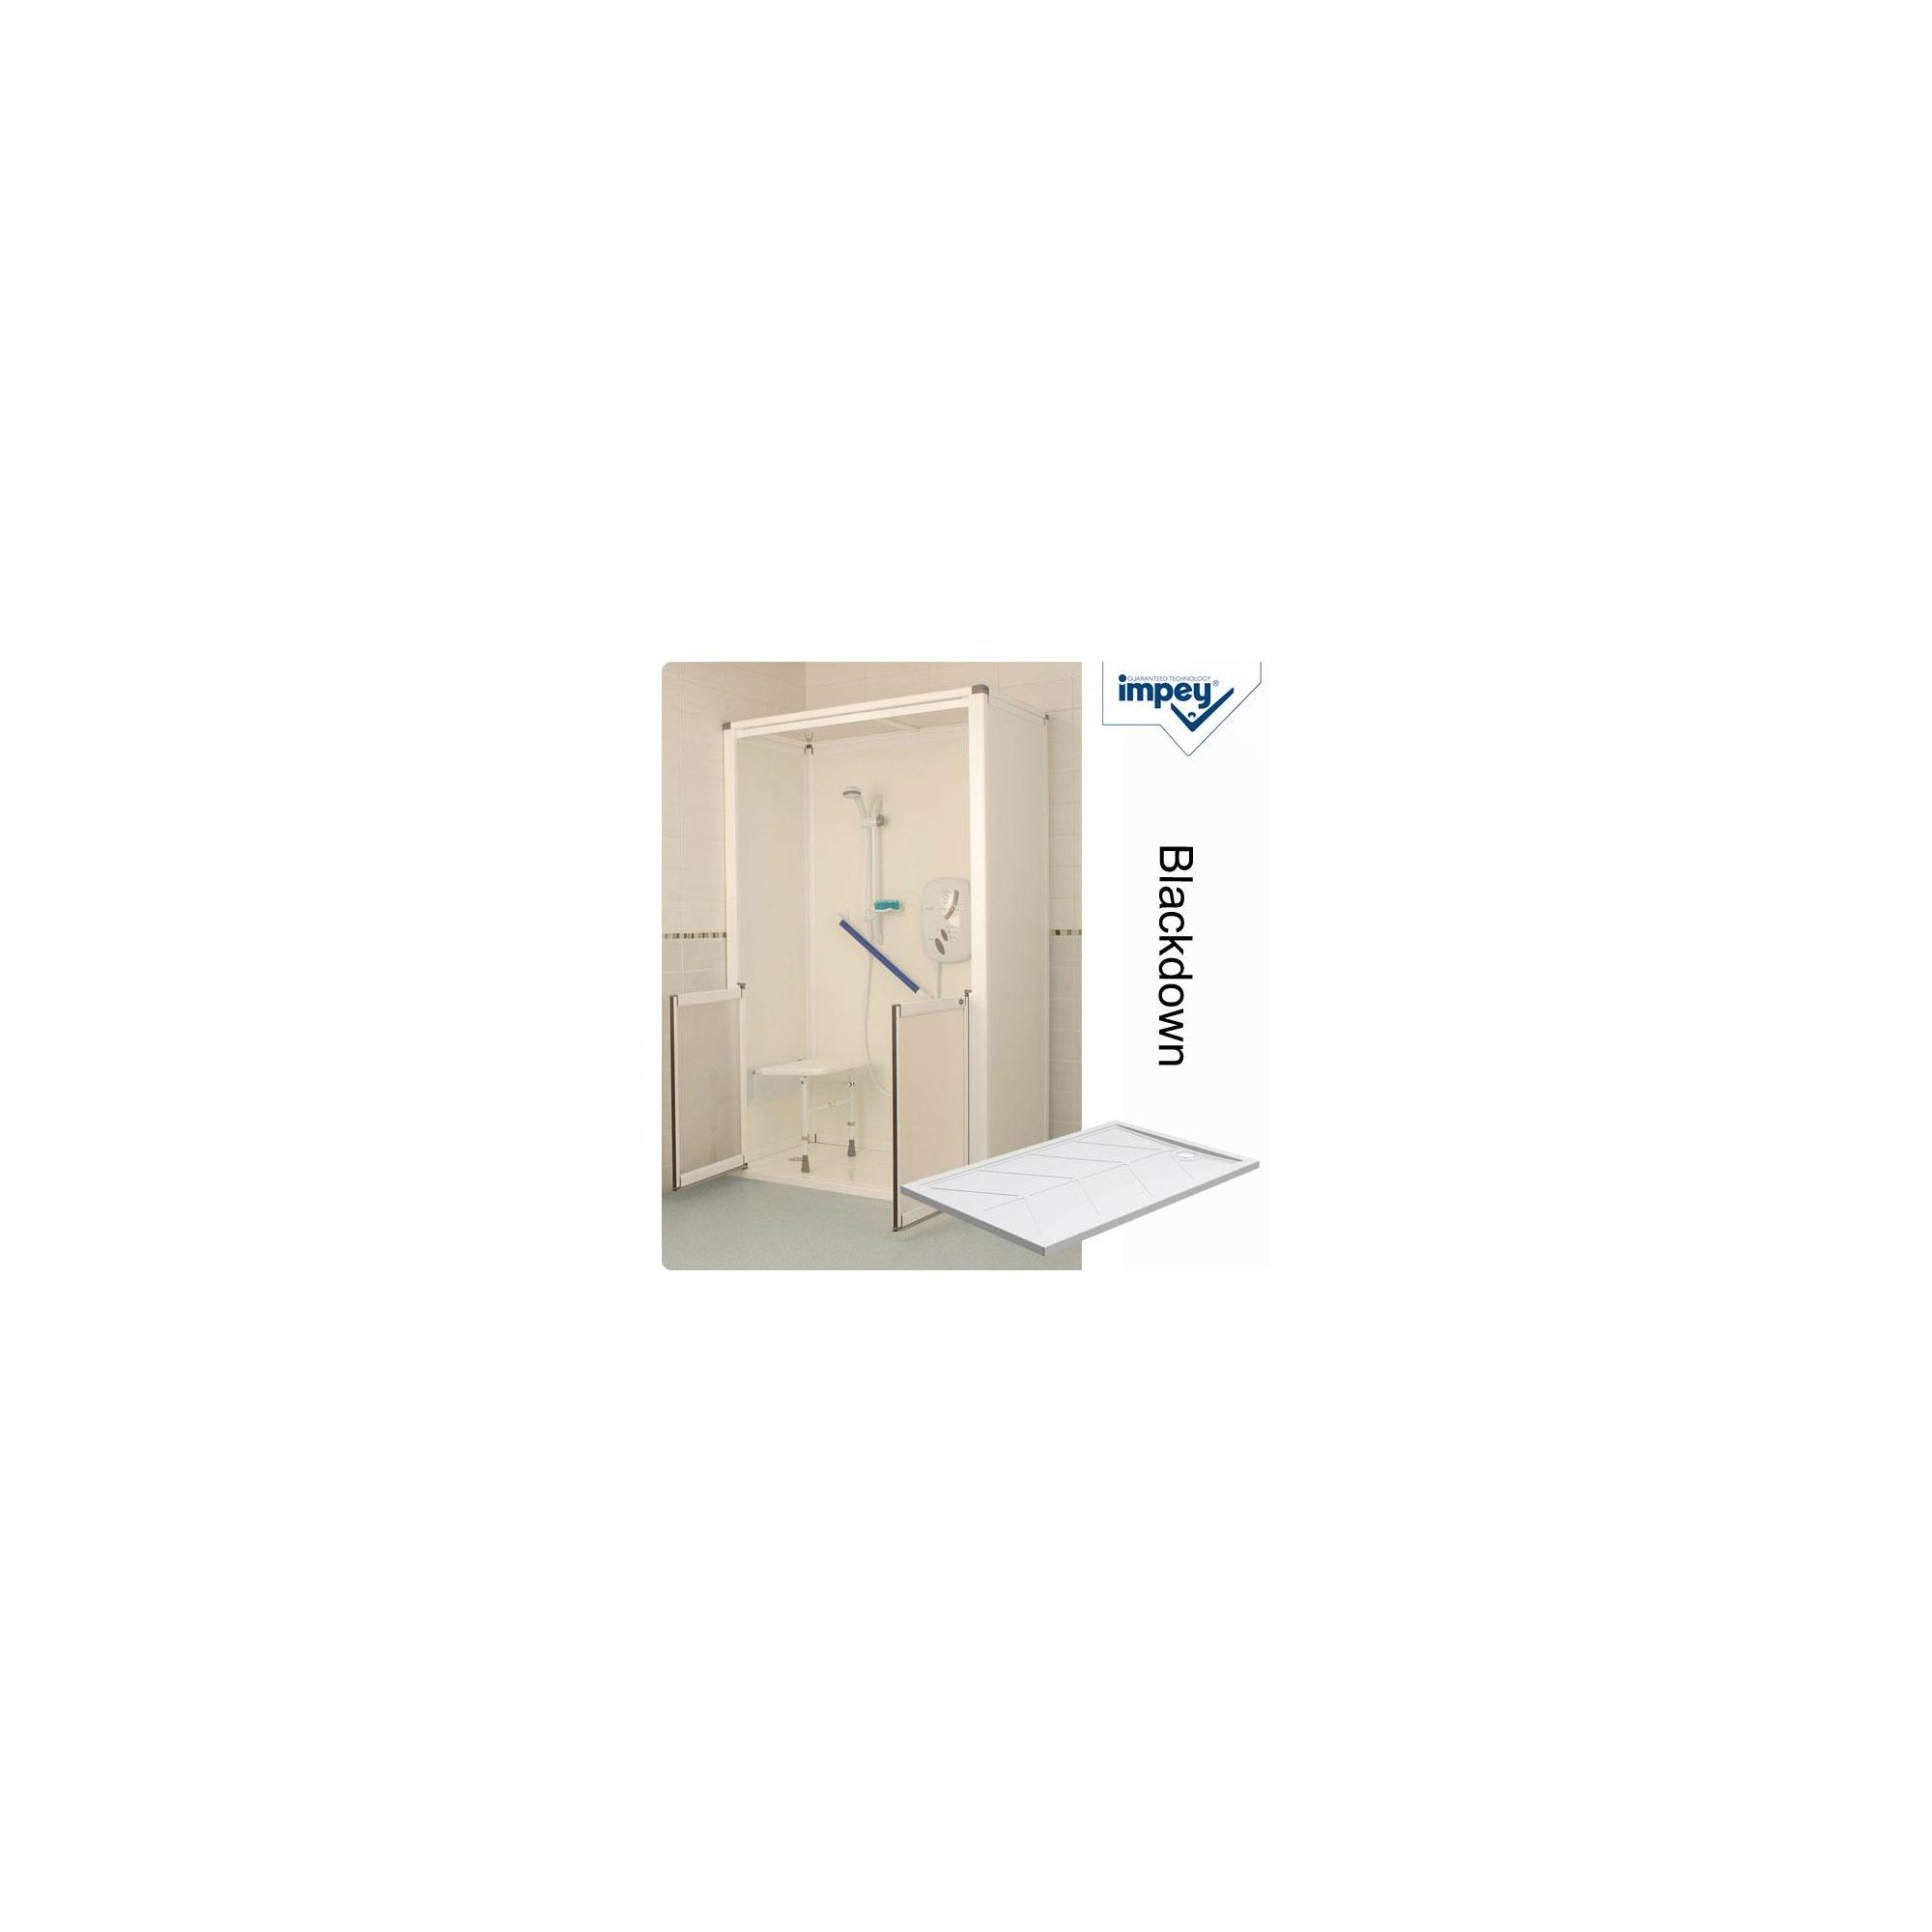 Impey Snowdon Swift-Fit Shower Cubicle with Blackdown Shower Tray at Tesco Direct